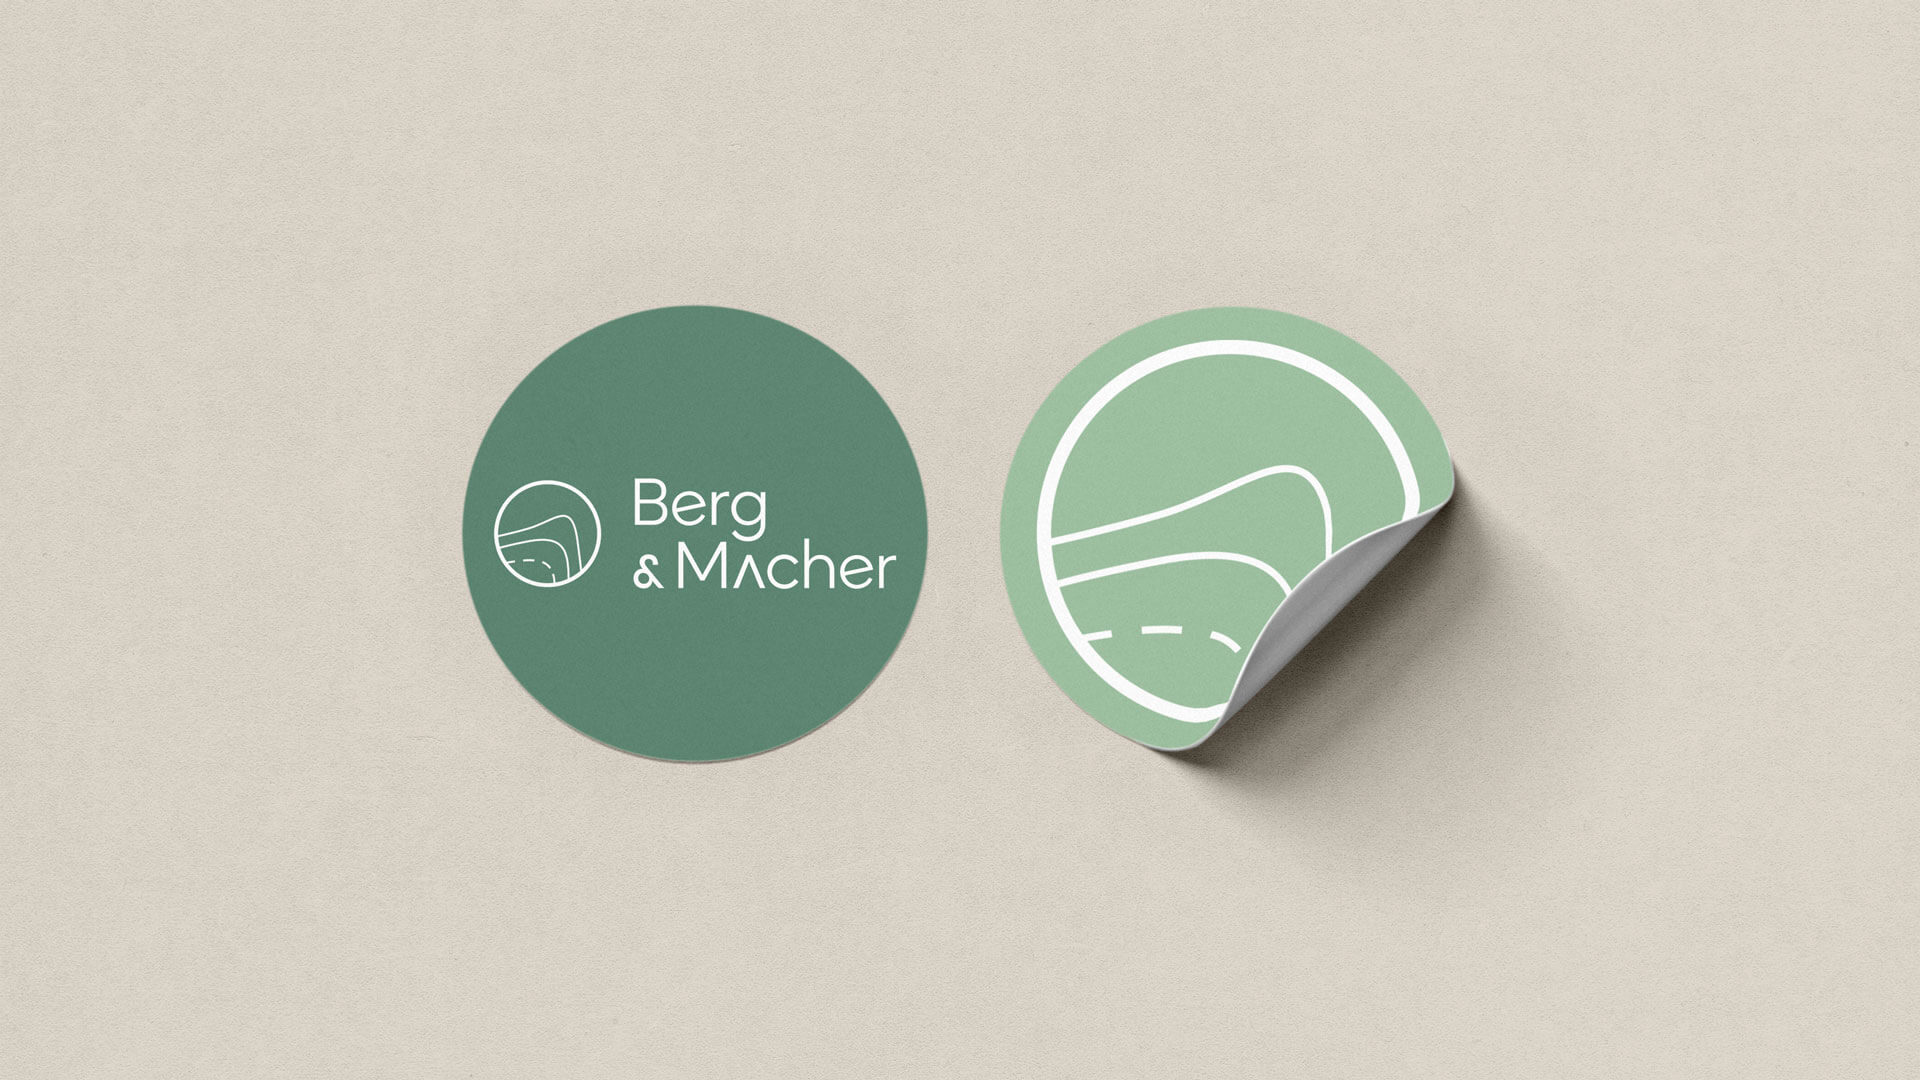 Sticker Mock-Up for Berg & Macher Logo